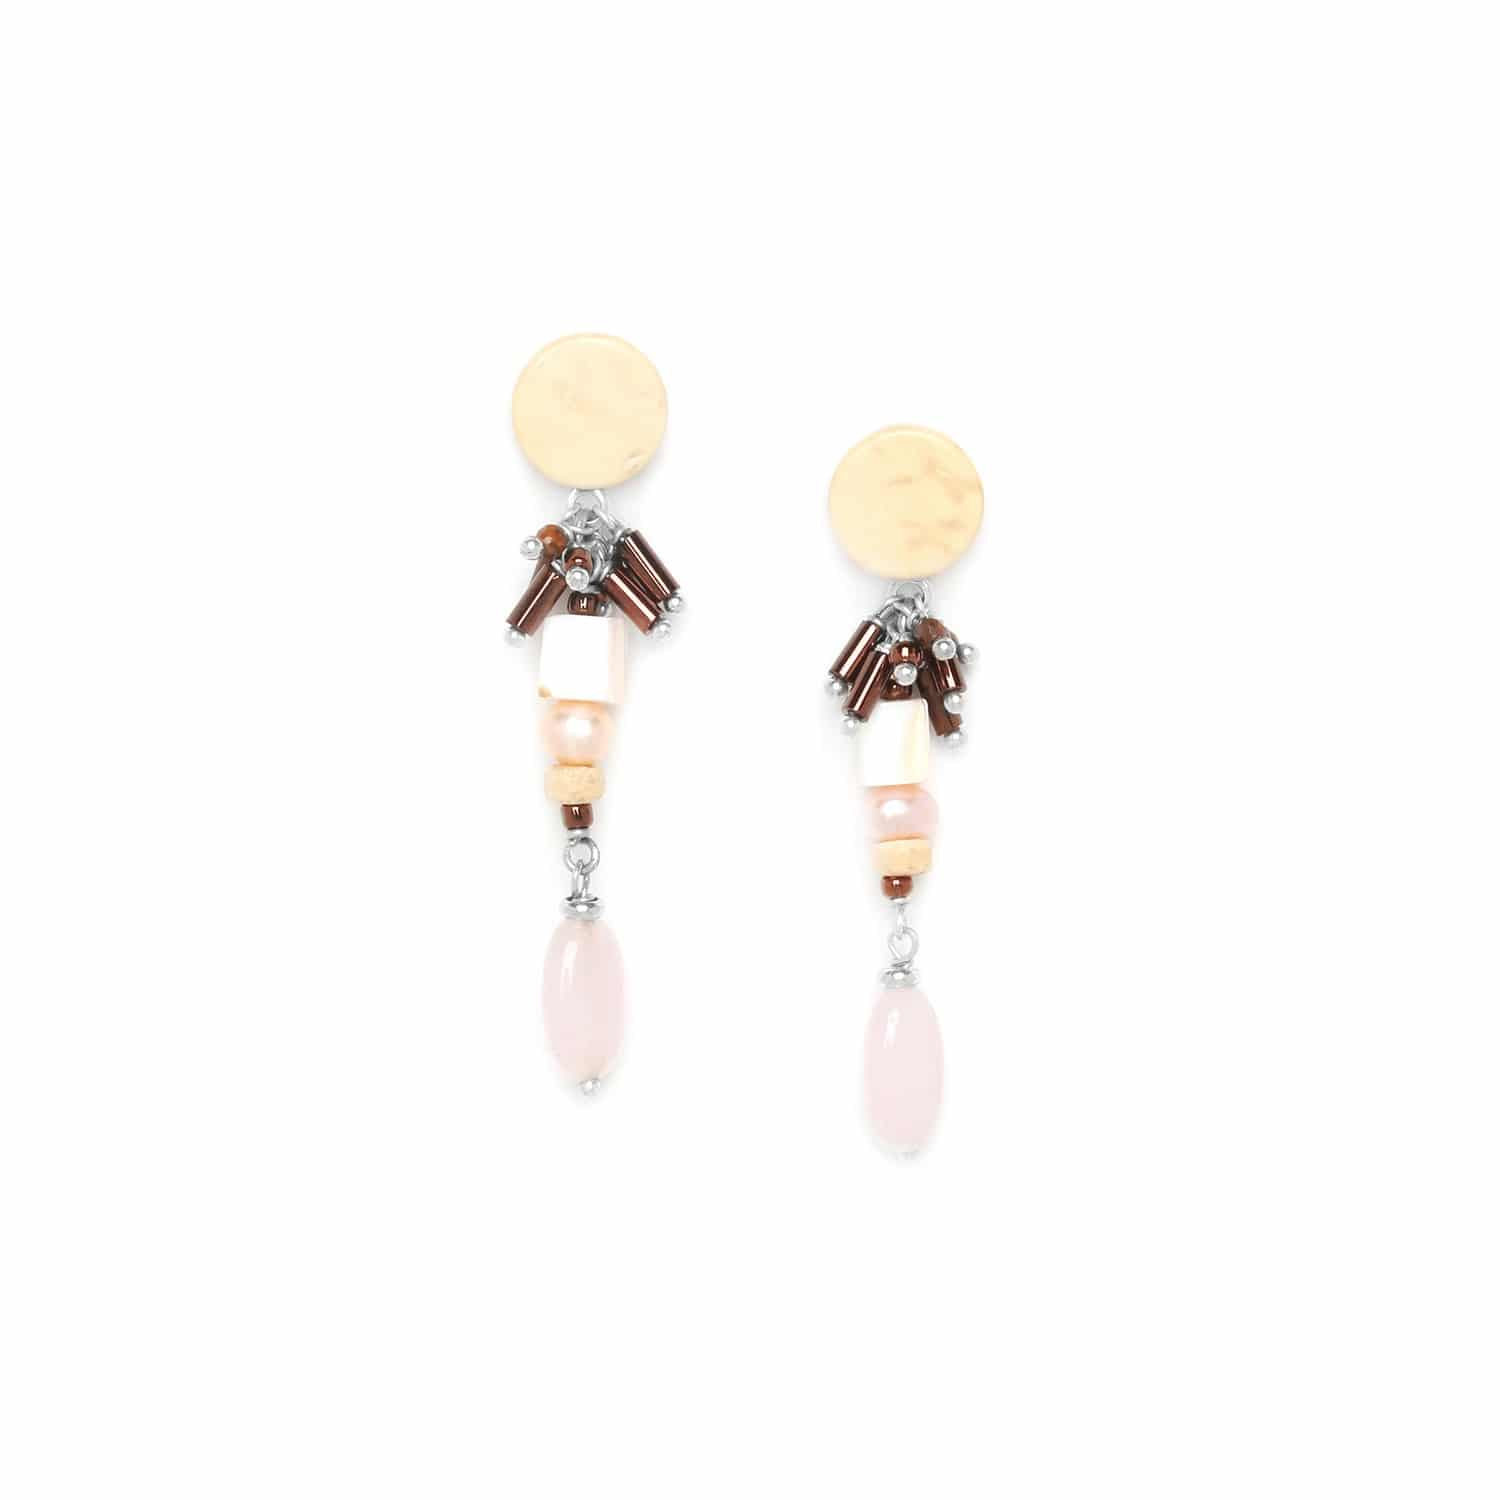 TERRE DOUCE small earrings